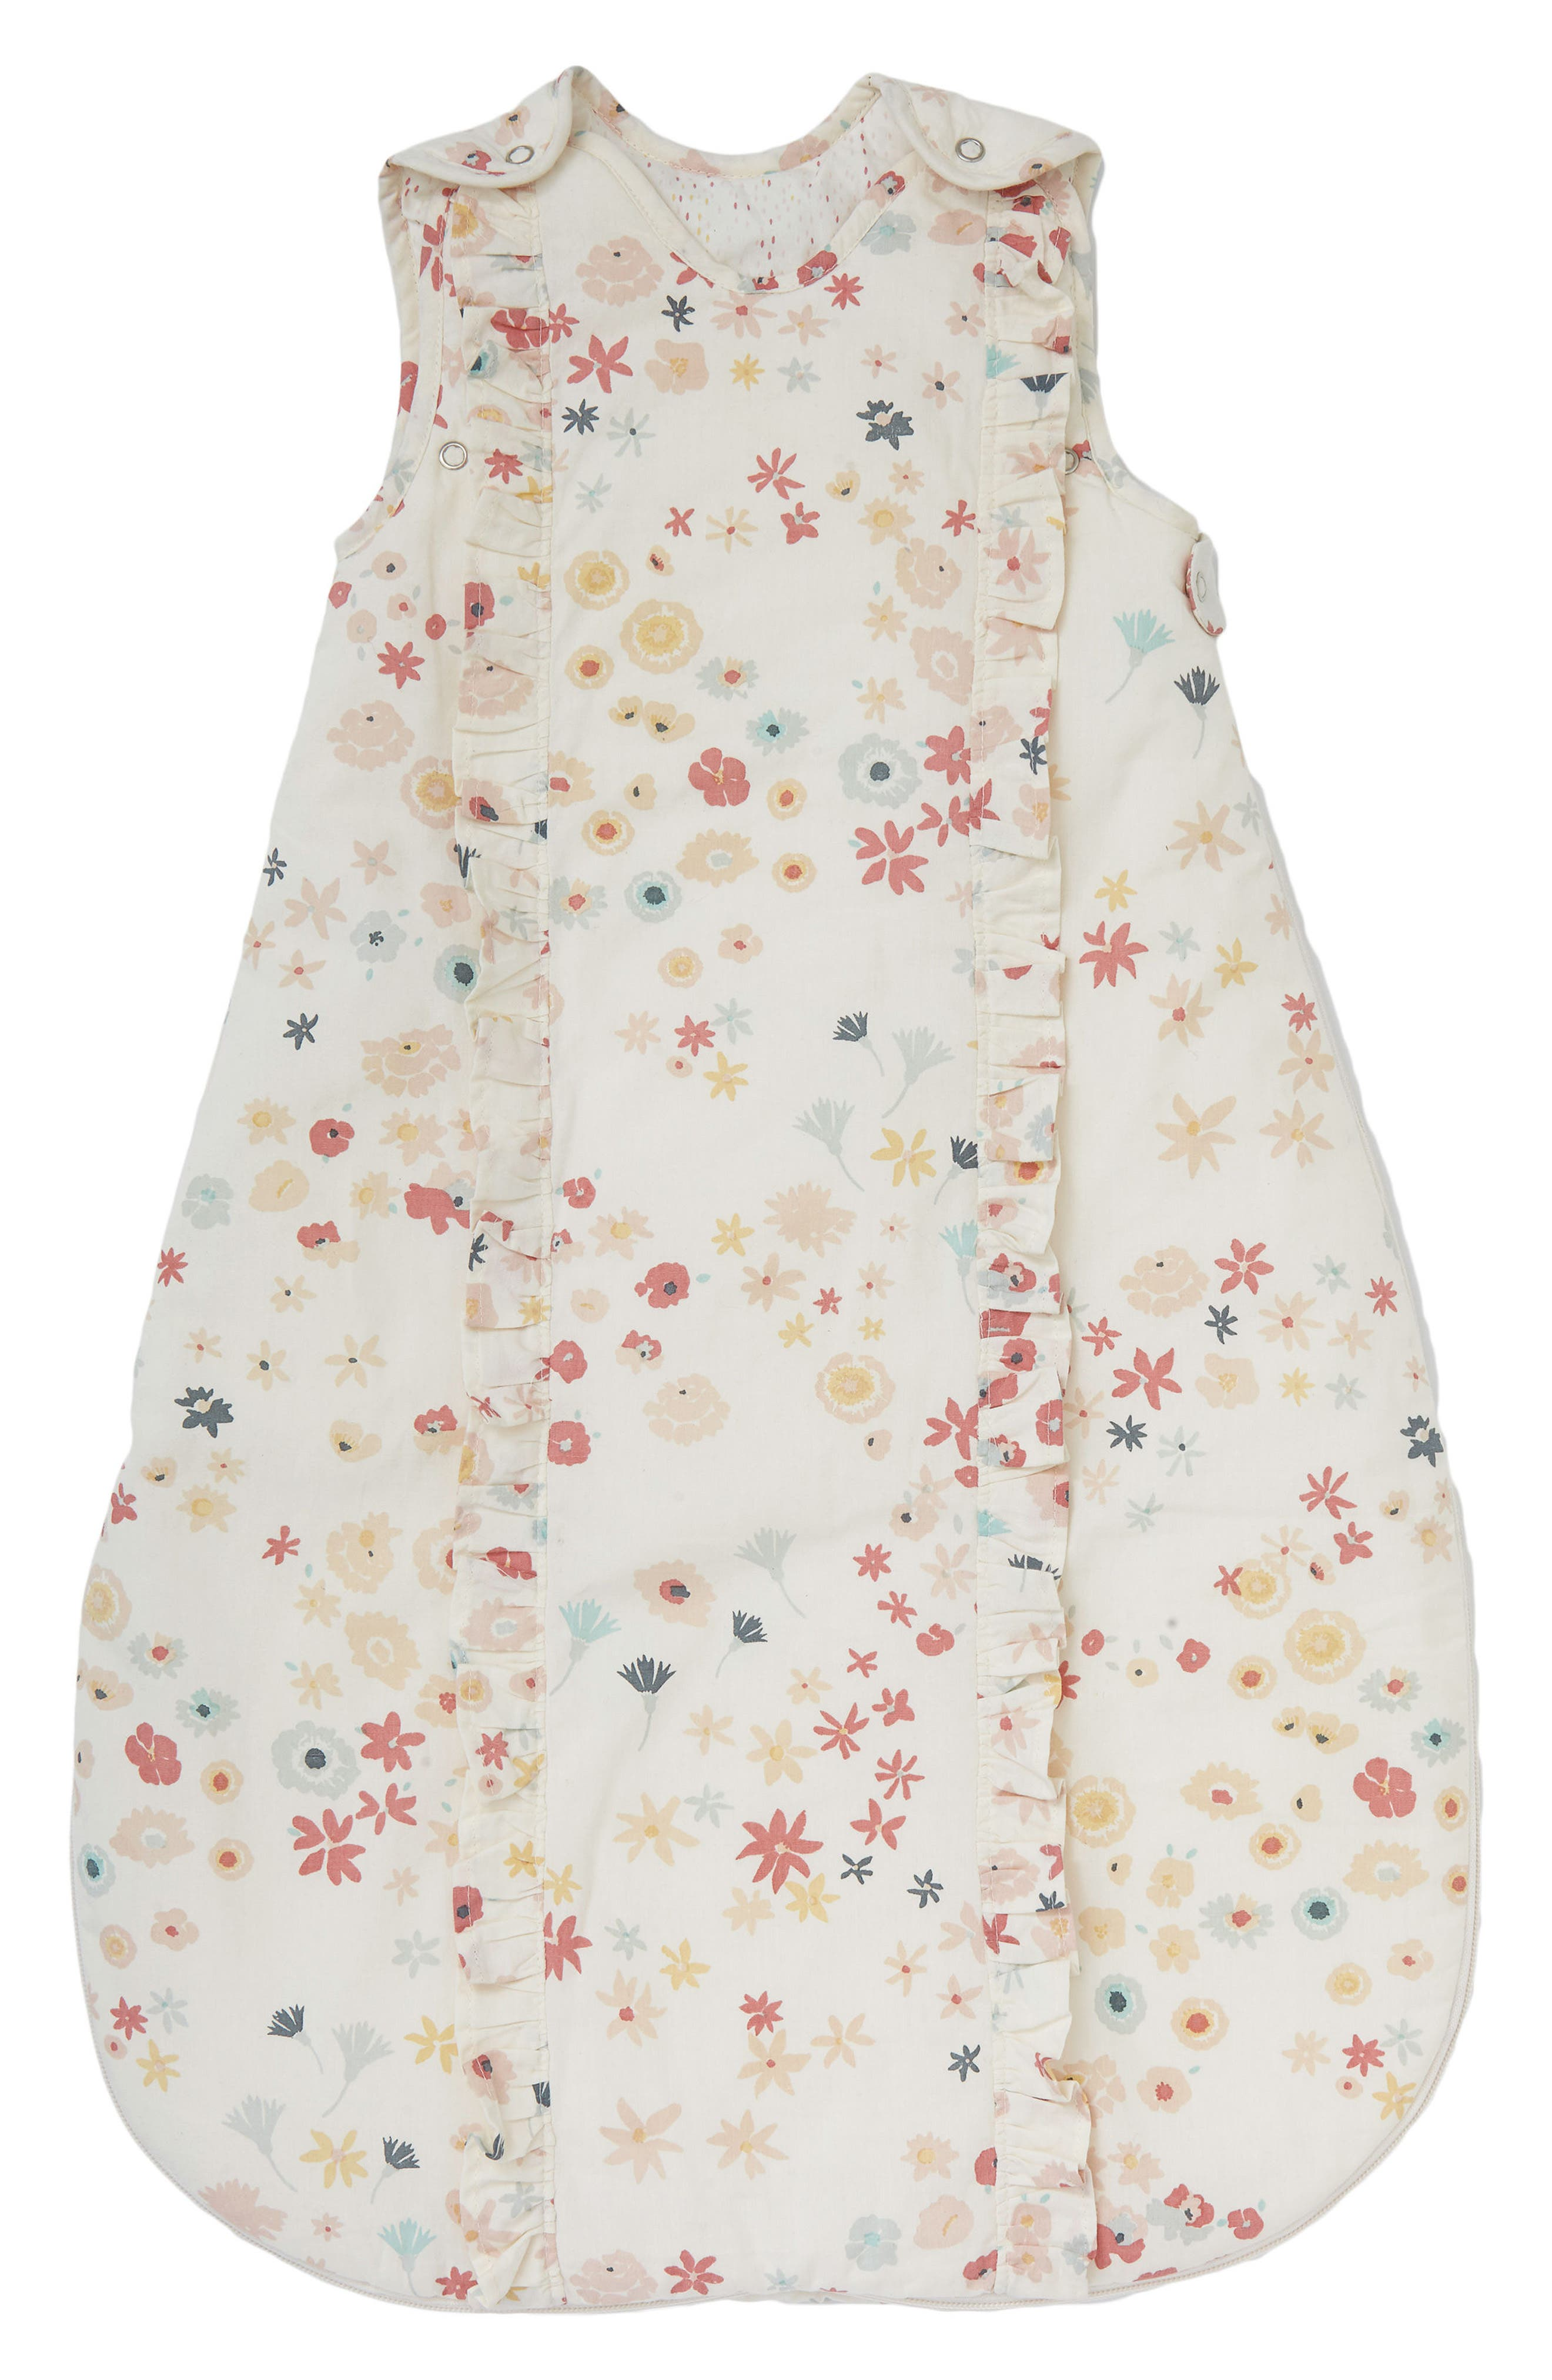 PEHR, Meadow Print Cotton Wearable Blanket, Main thumbnail 1, color, PINK